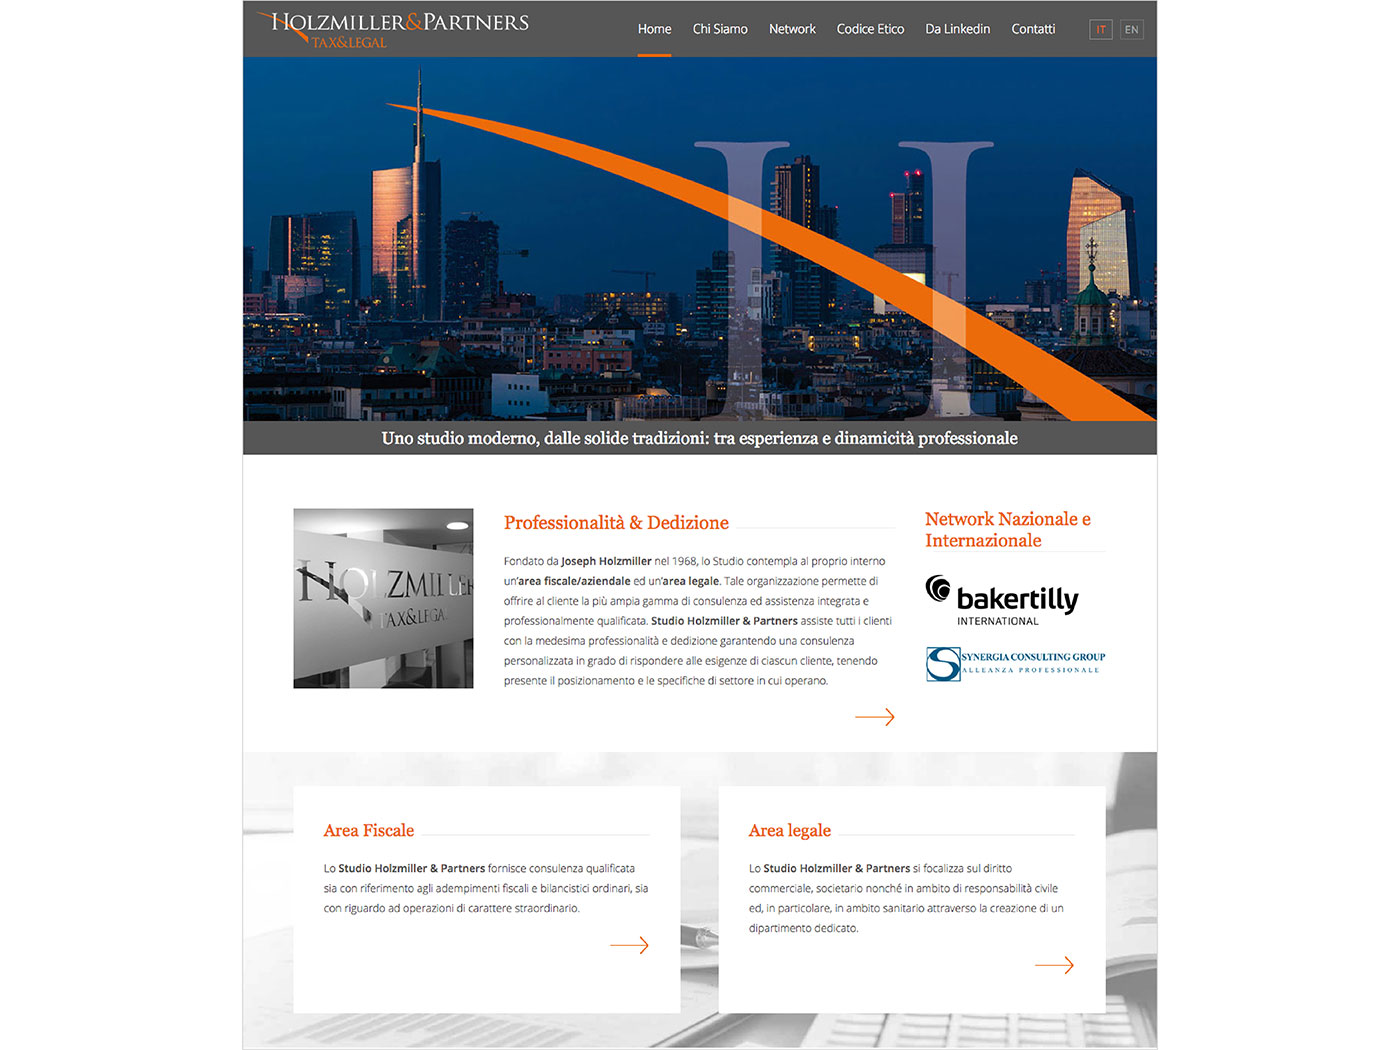 Studio Holzmiller & Partners website